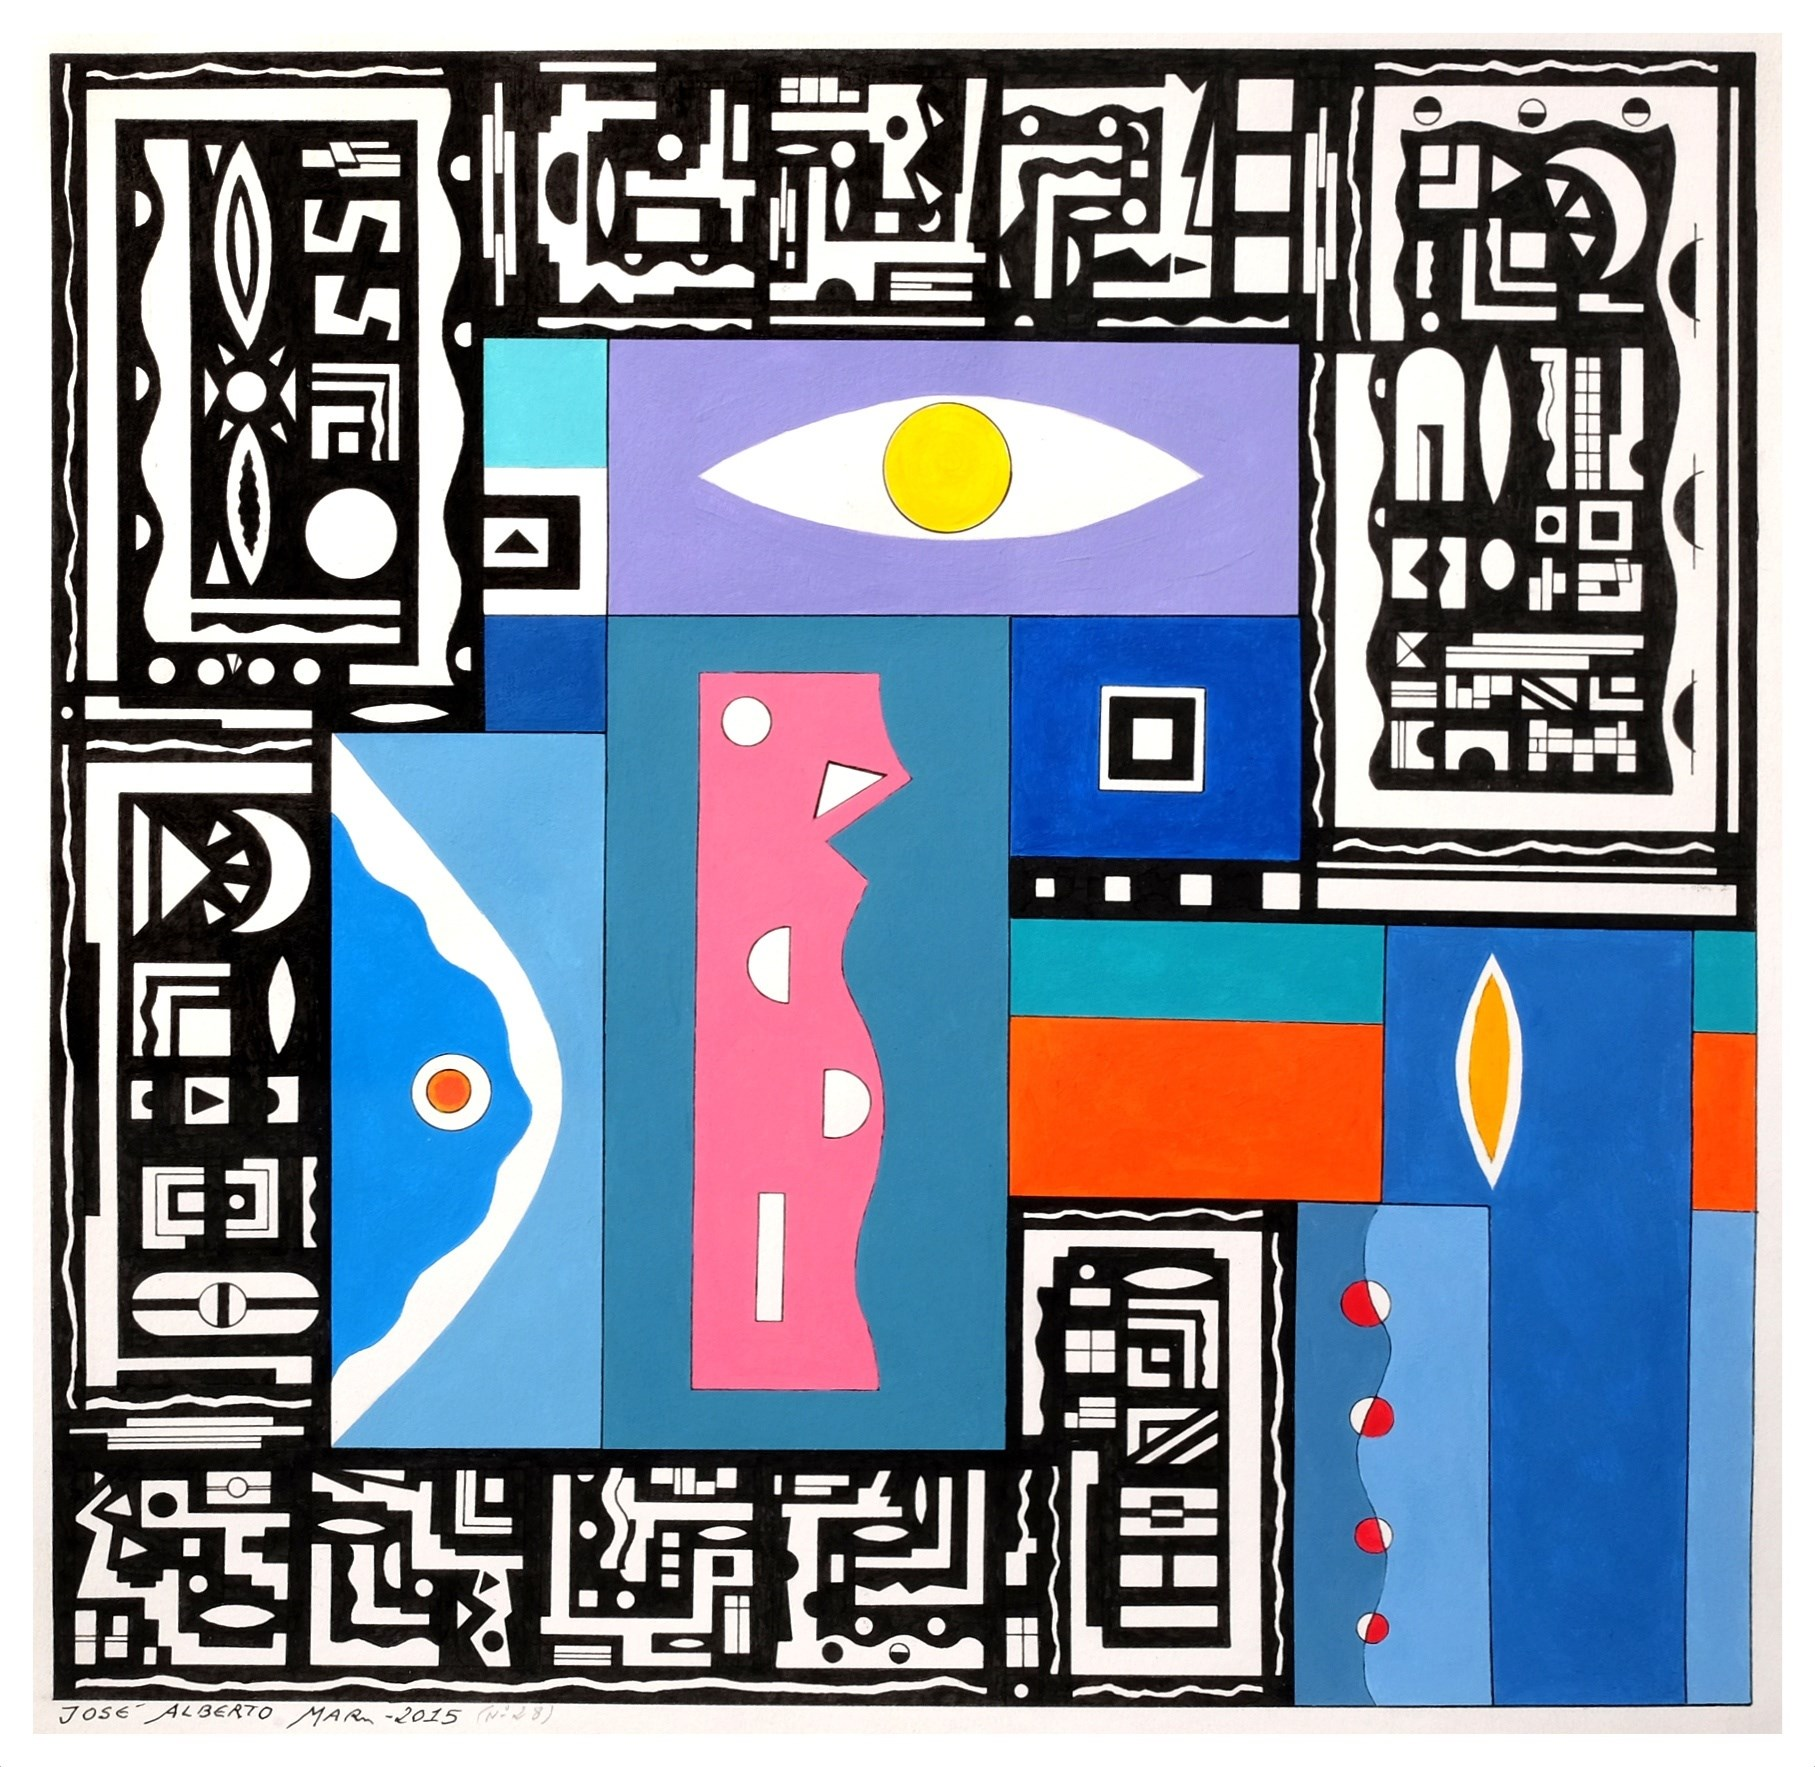 SERIES: SMALL WISDOMS (Nº 28). SÉRIE: PEQUENAS SABEDORIAS (Nº28), original Geometric Acrylic Painting by José Alberto Mar